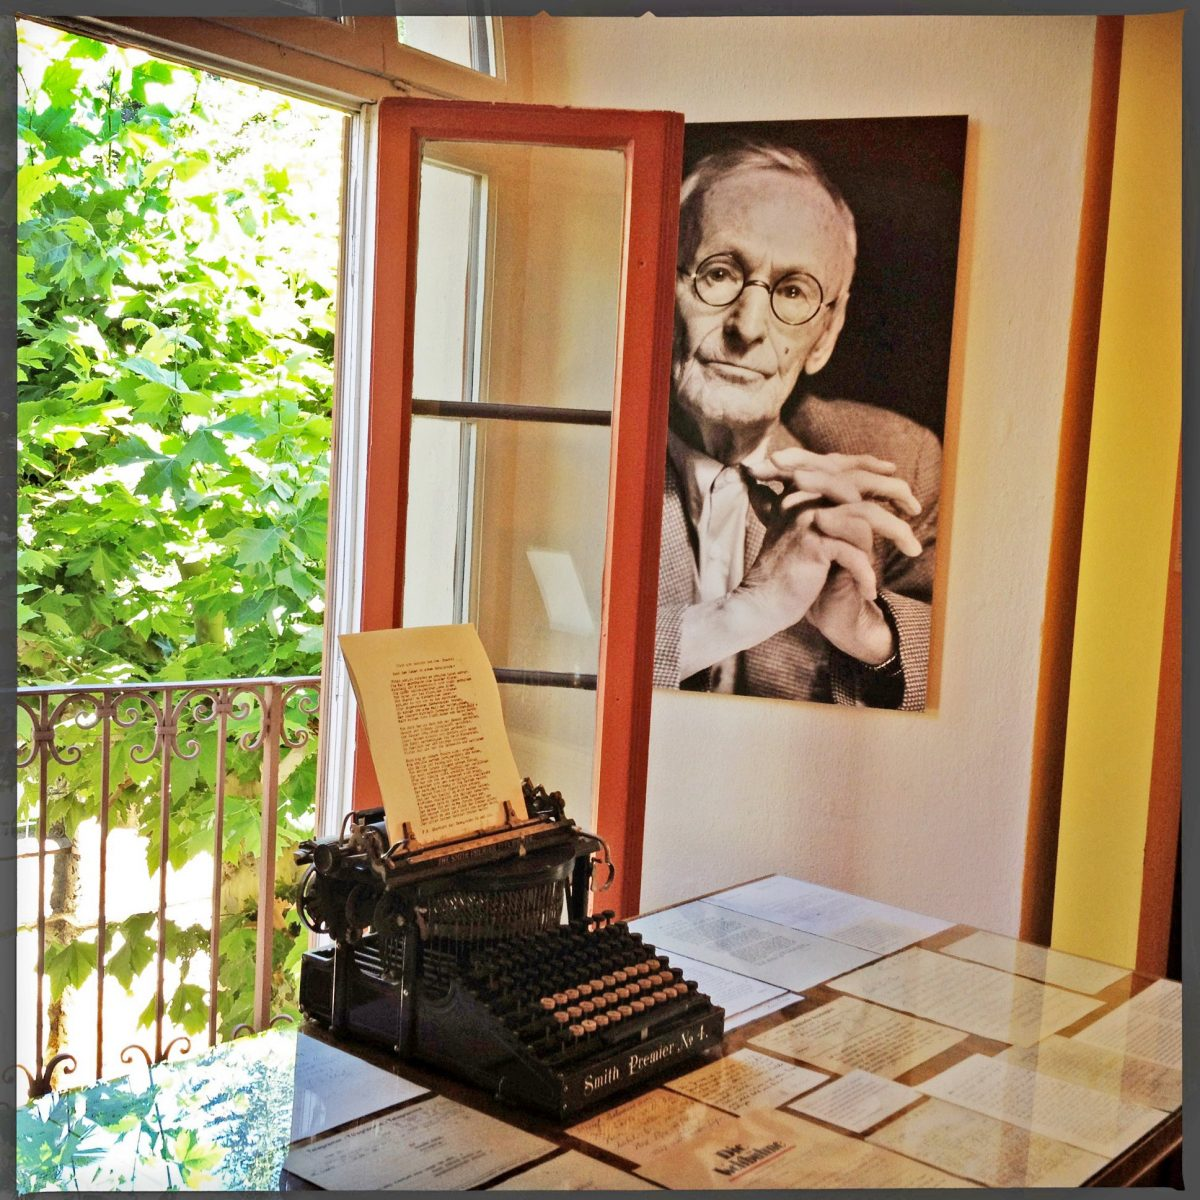 The famous typewriter used by Herman Hesse in his museum